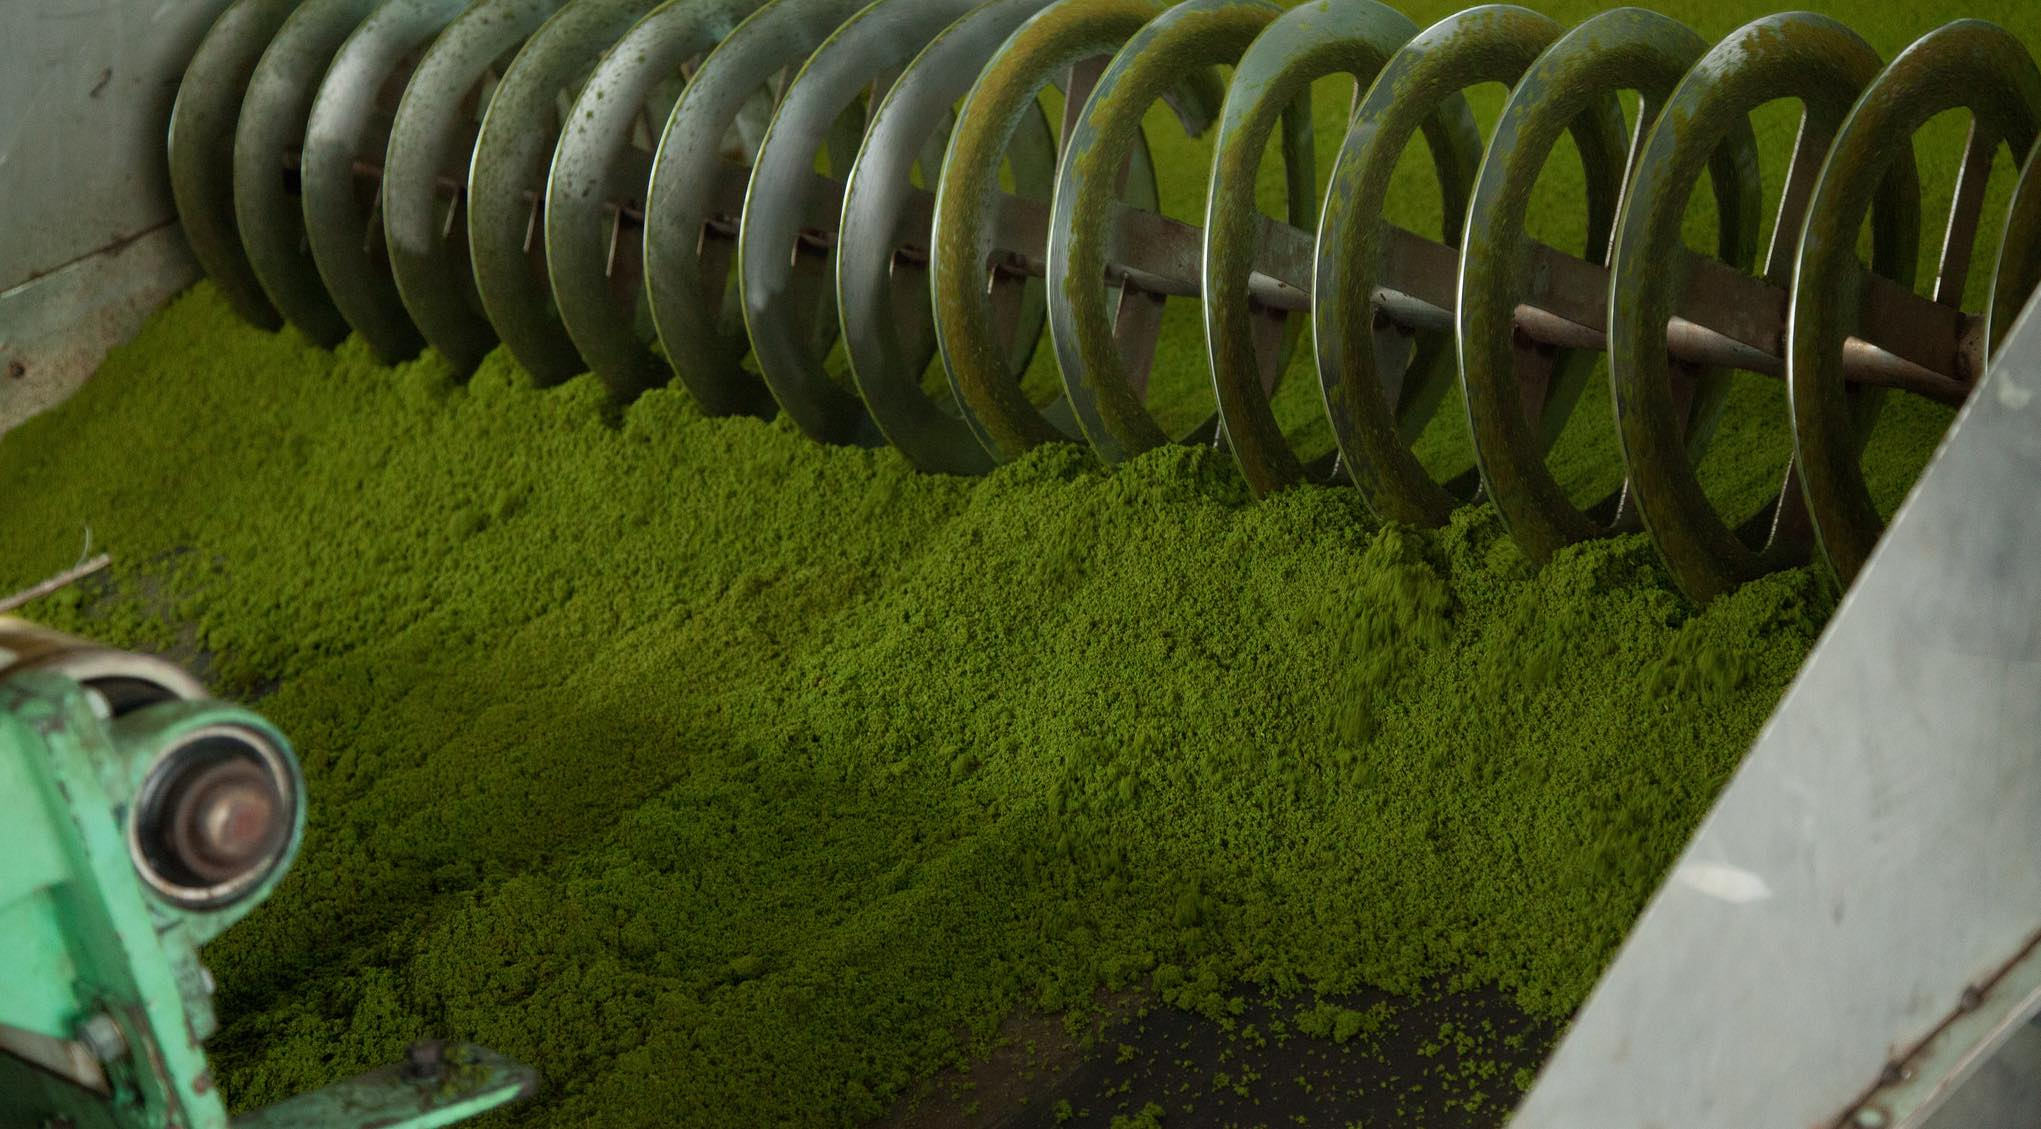 Tea processing in Rwanda (Photo: World Bank/Flickr)